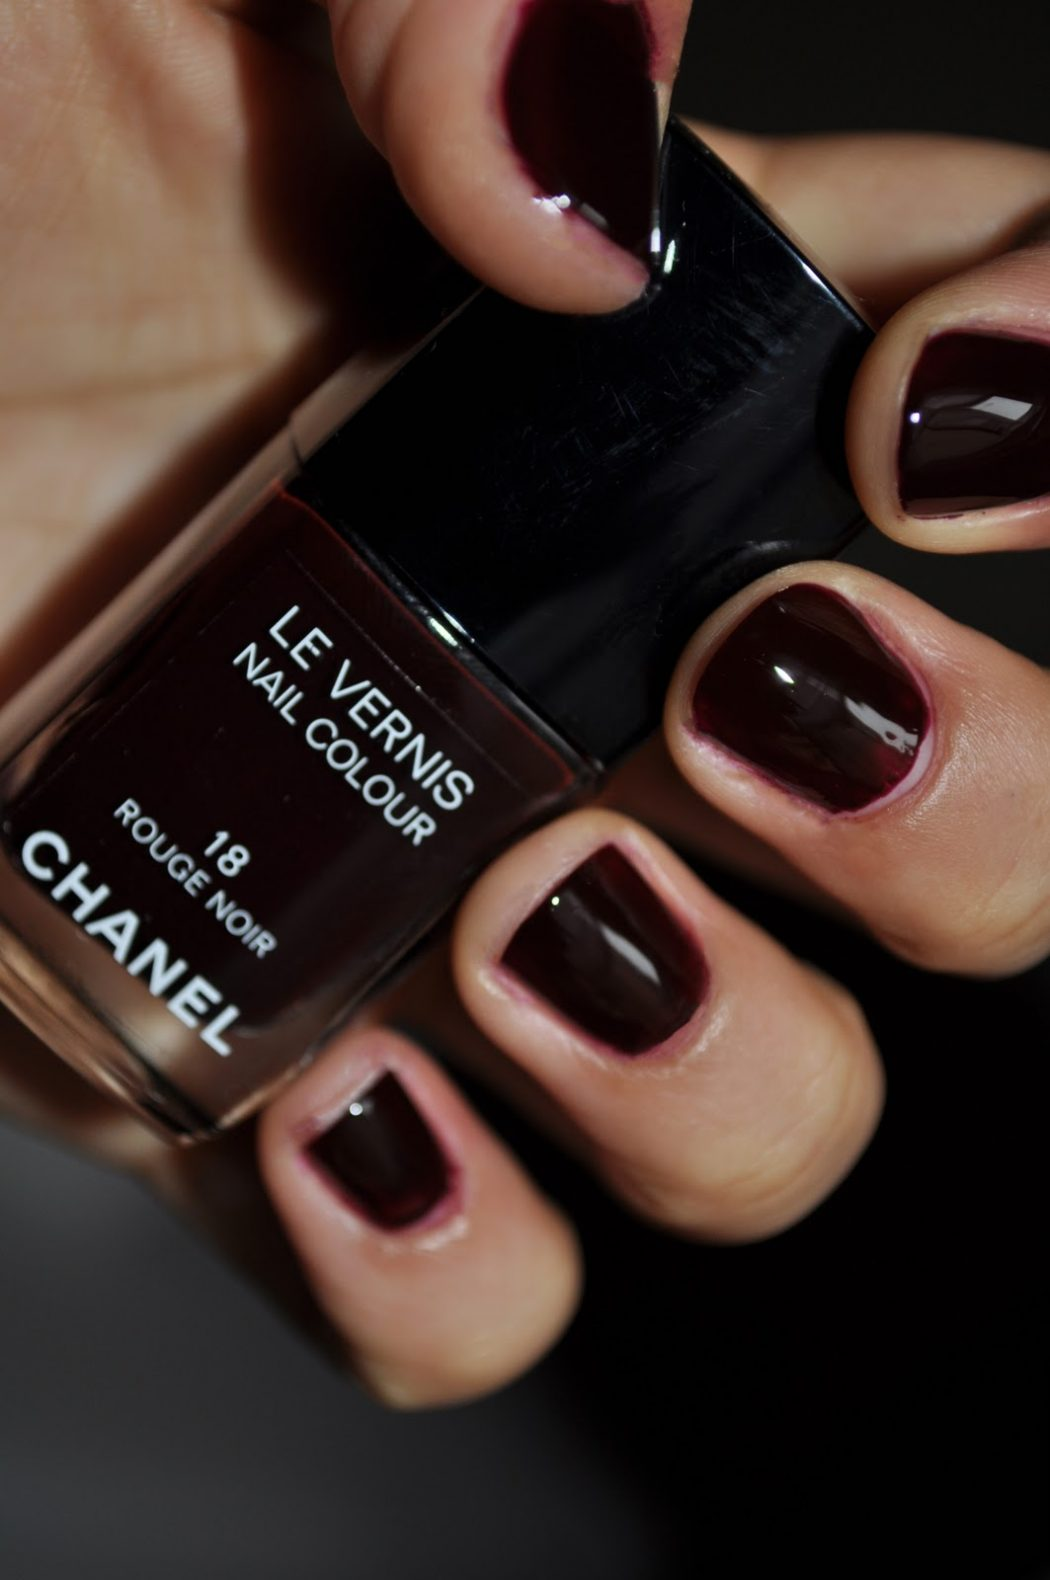 chanel-rouge-noir-022-new 5 Surprising Facts About Chanel